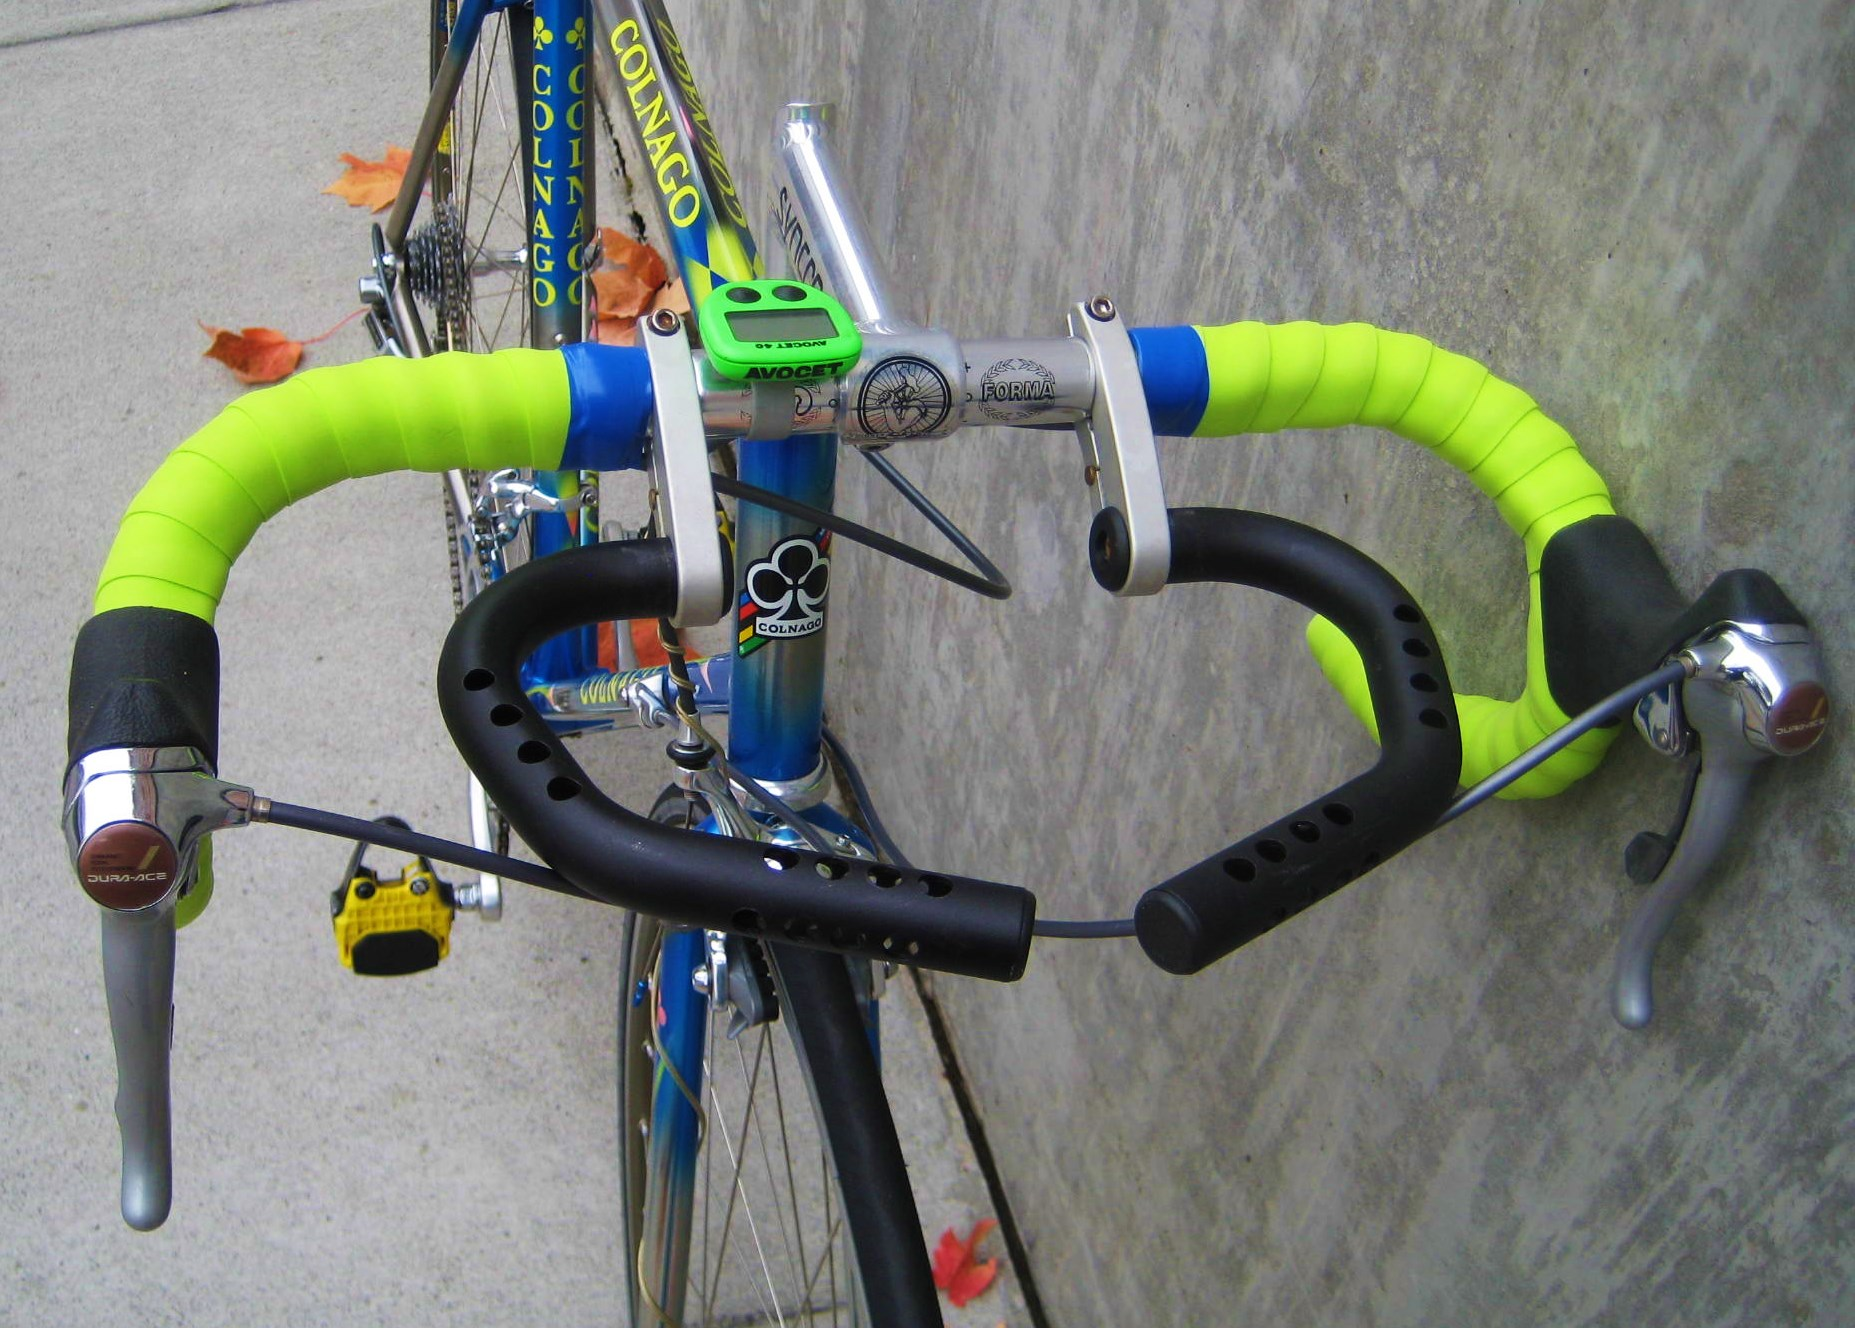 Used and Vintage bike parts for sale at Classic Cycle